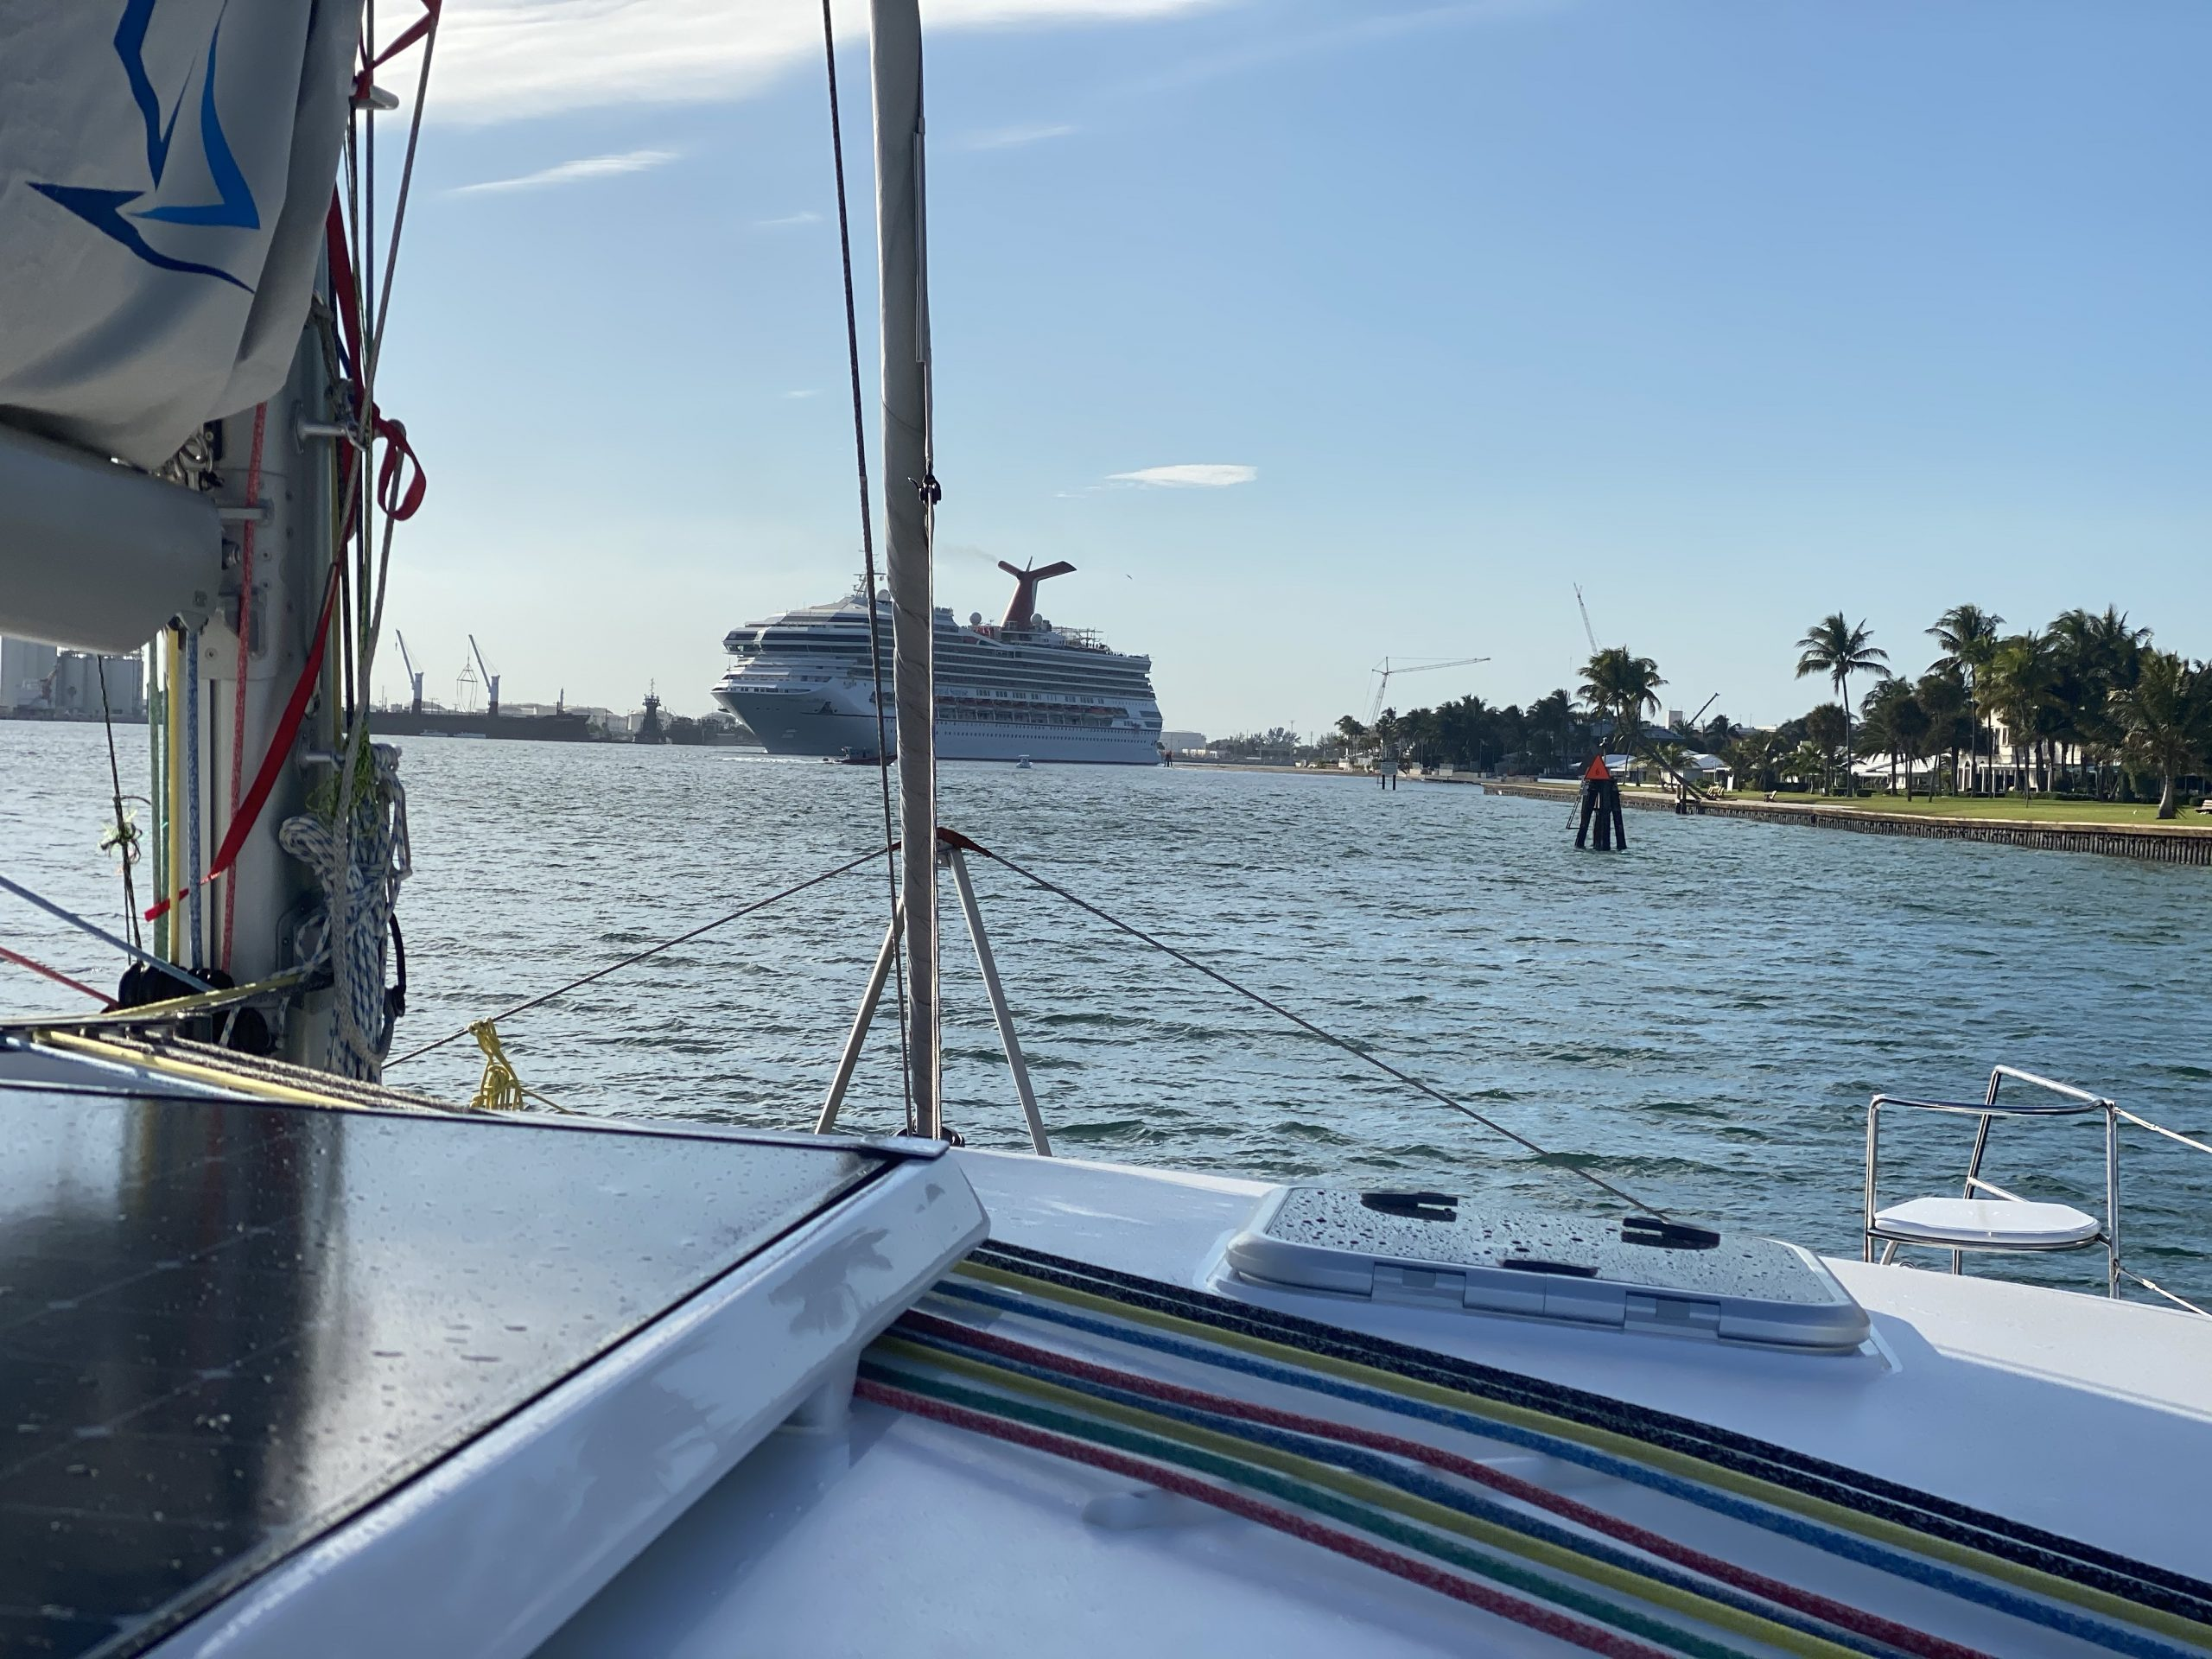 Into Fort Lauderdale